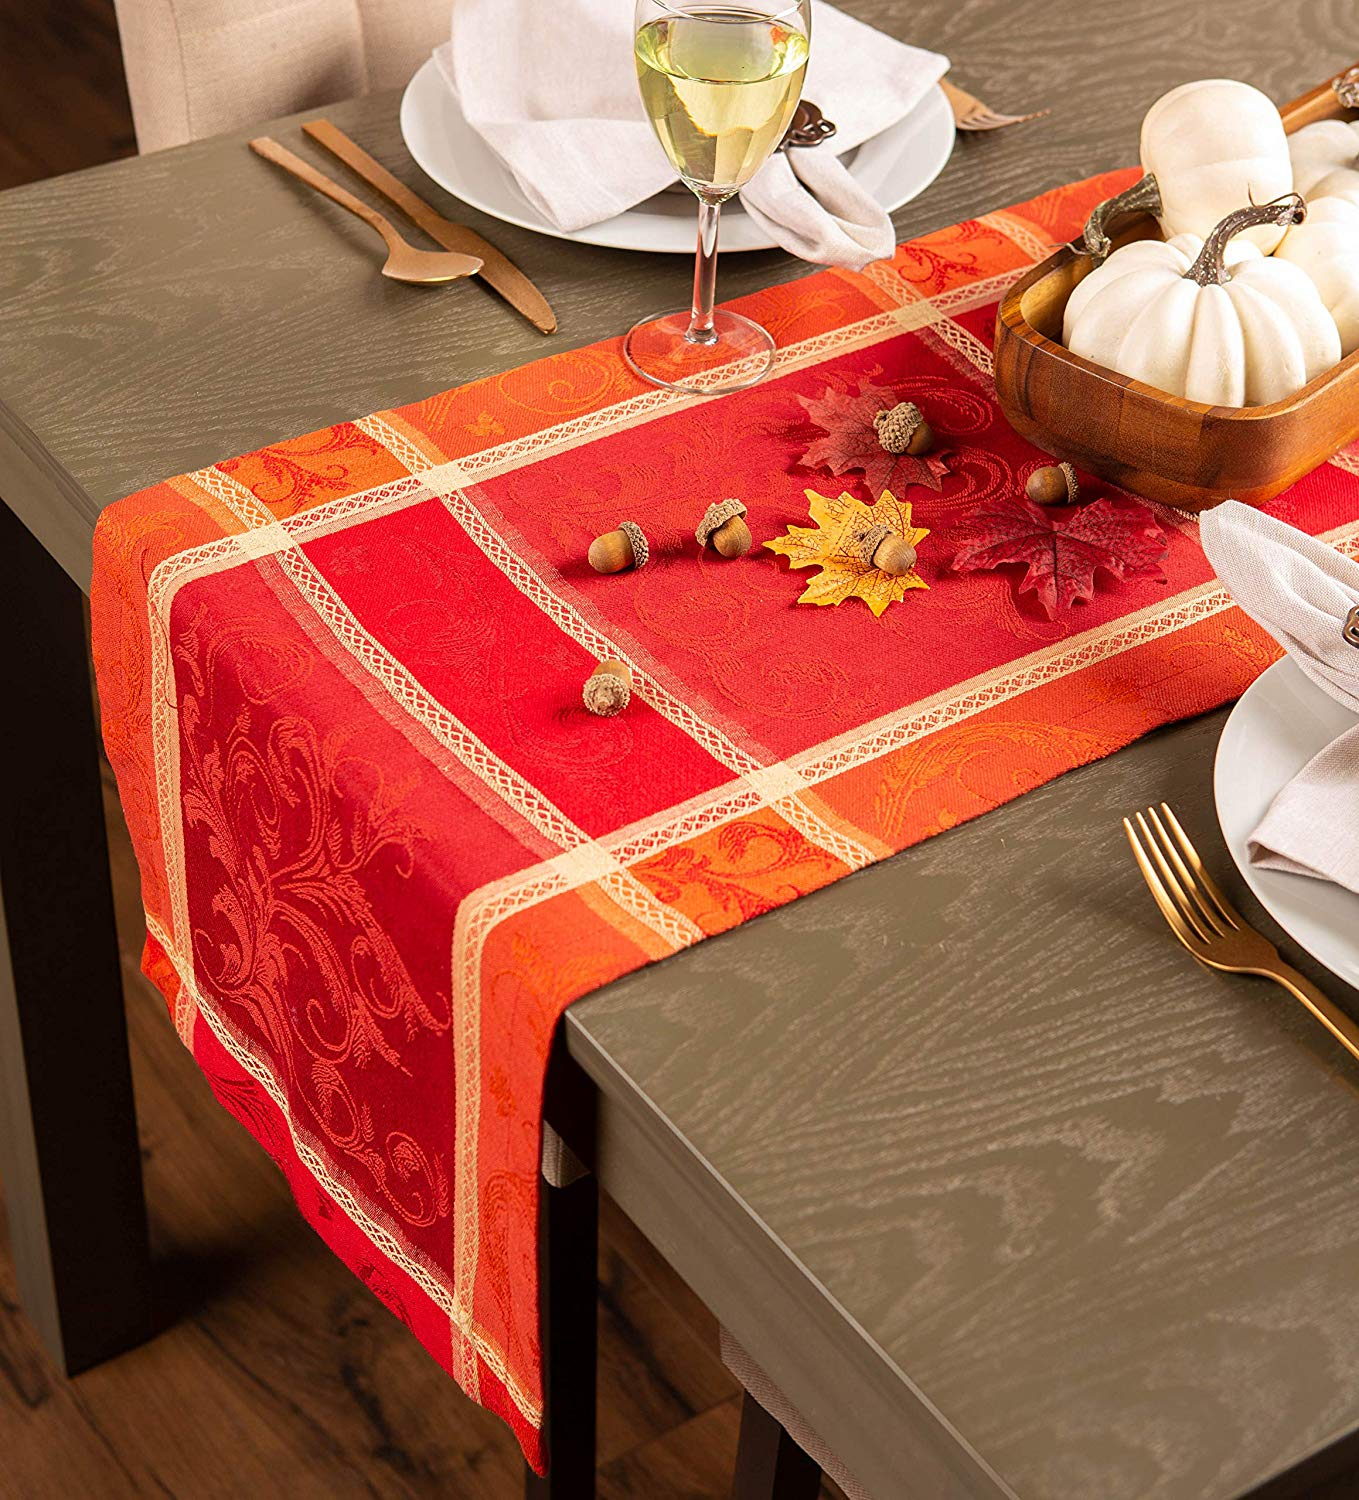 A Table Runner